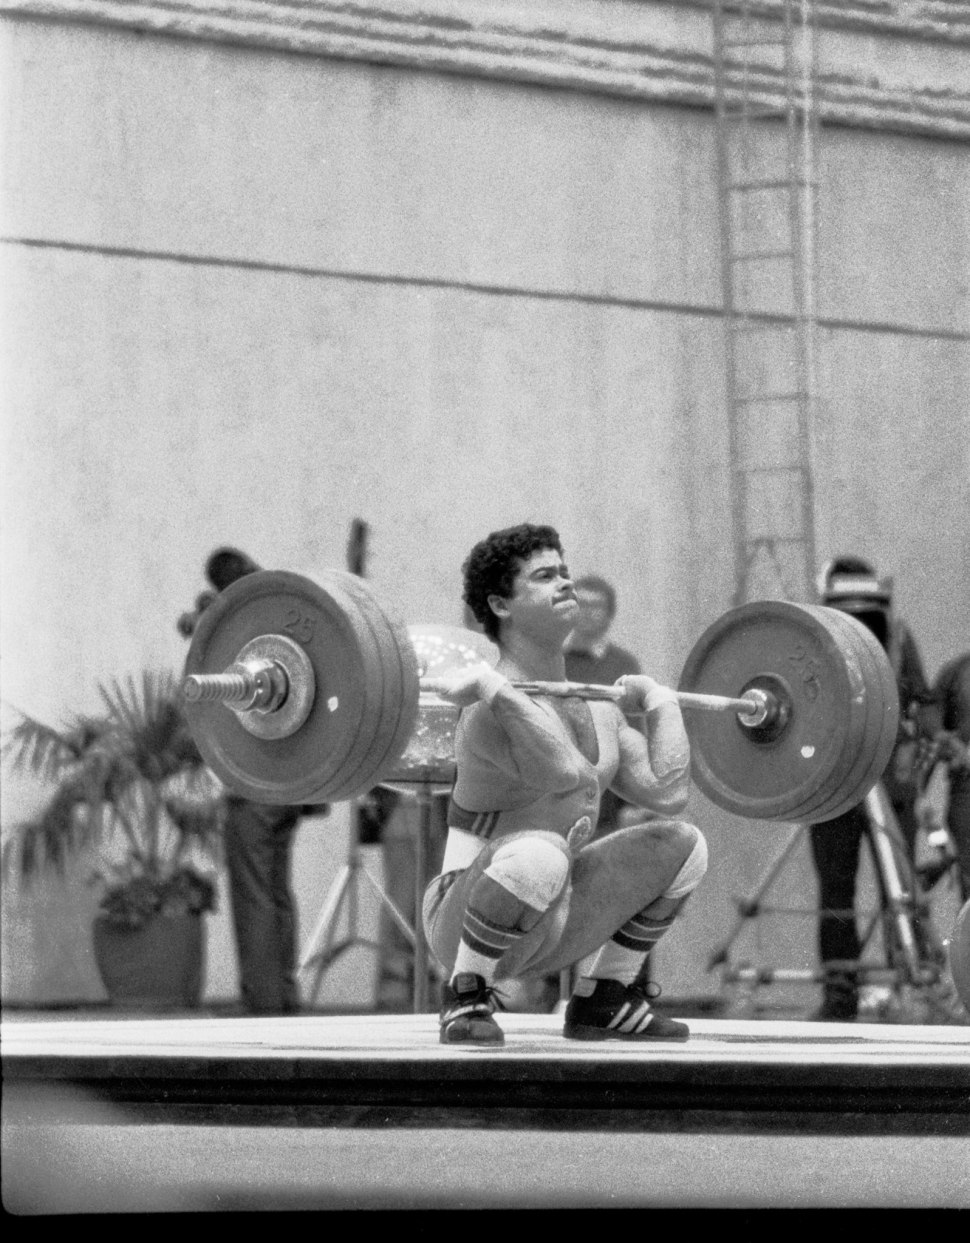 Bruce Klemens Classic Weightlifting Photography